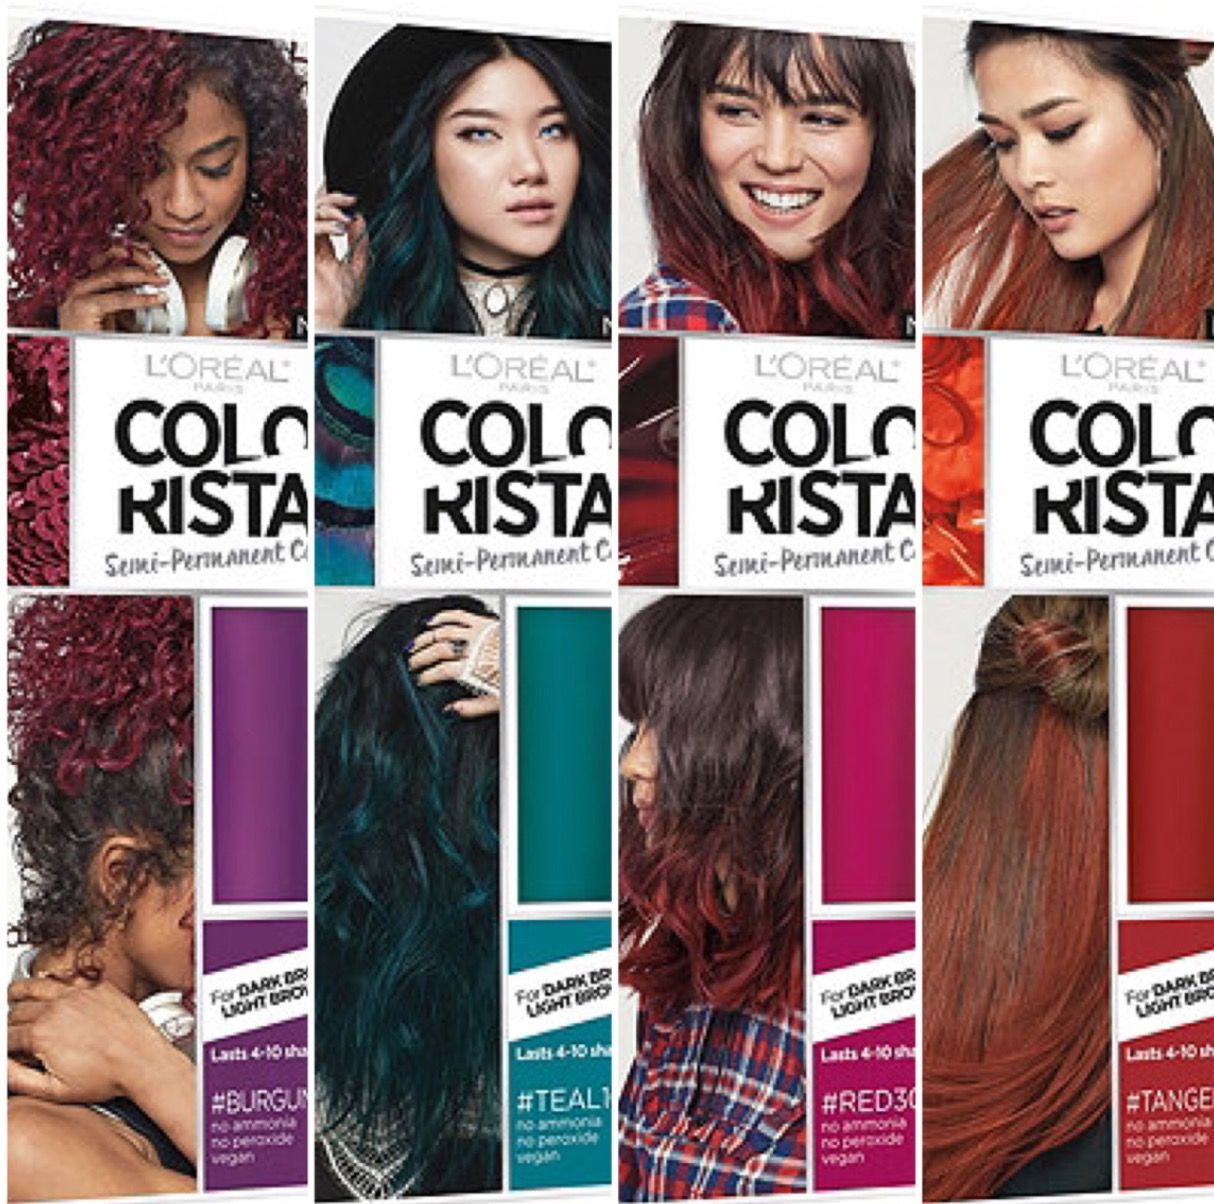 5338ca0f2c4 Colorista washout hair paint by L'Oréal available in Sephora Hair Color  Brands, Burgundy